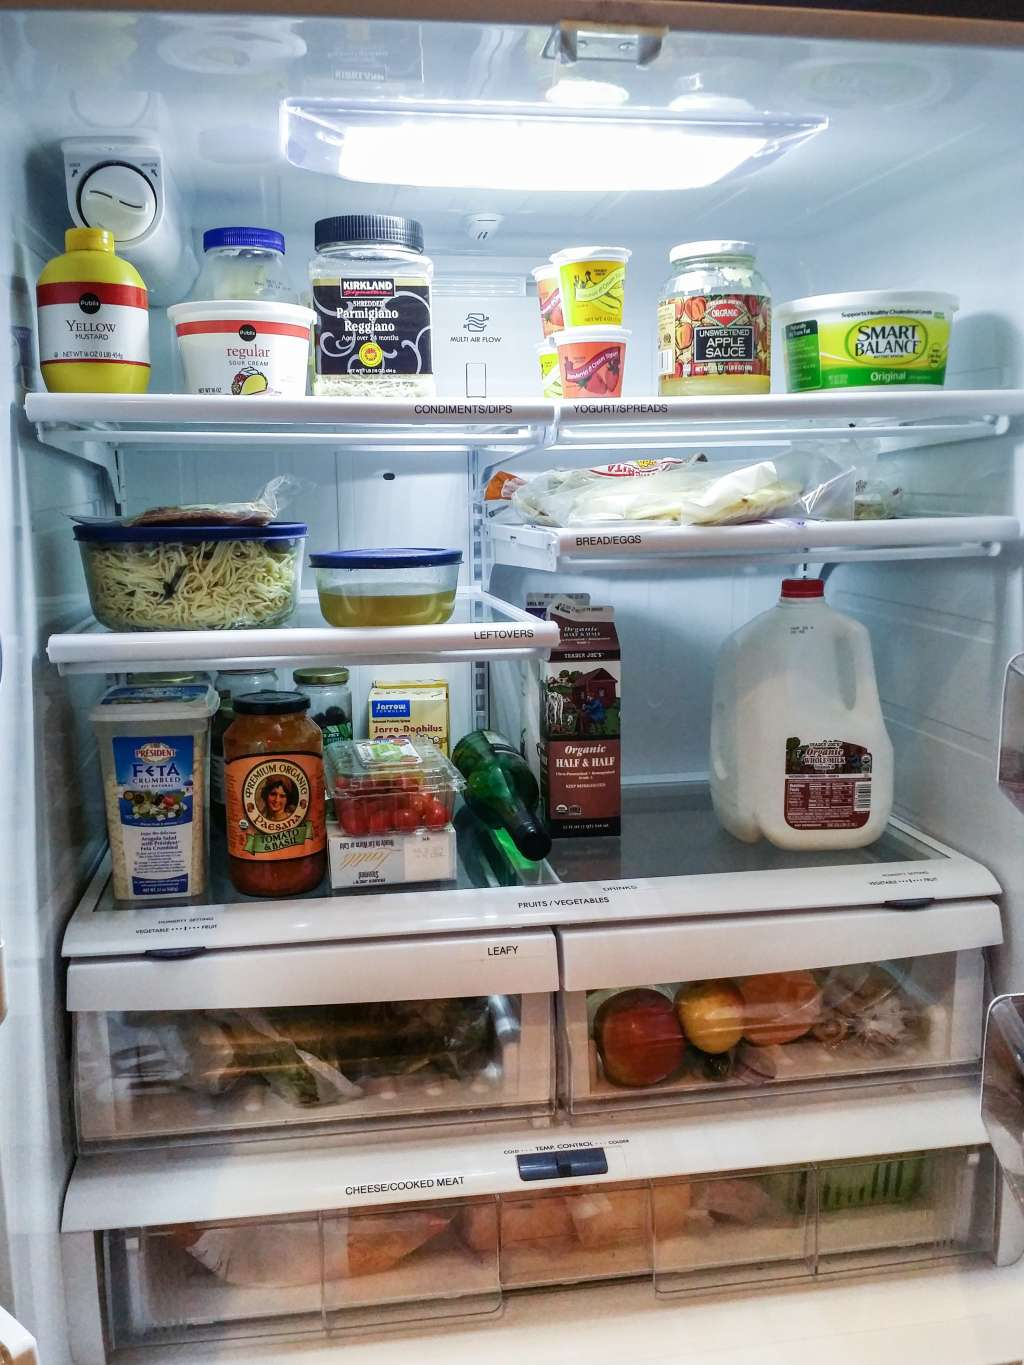 How To Clean the Inside of Your Fridge in 30 Minutes or Less